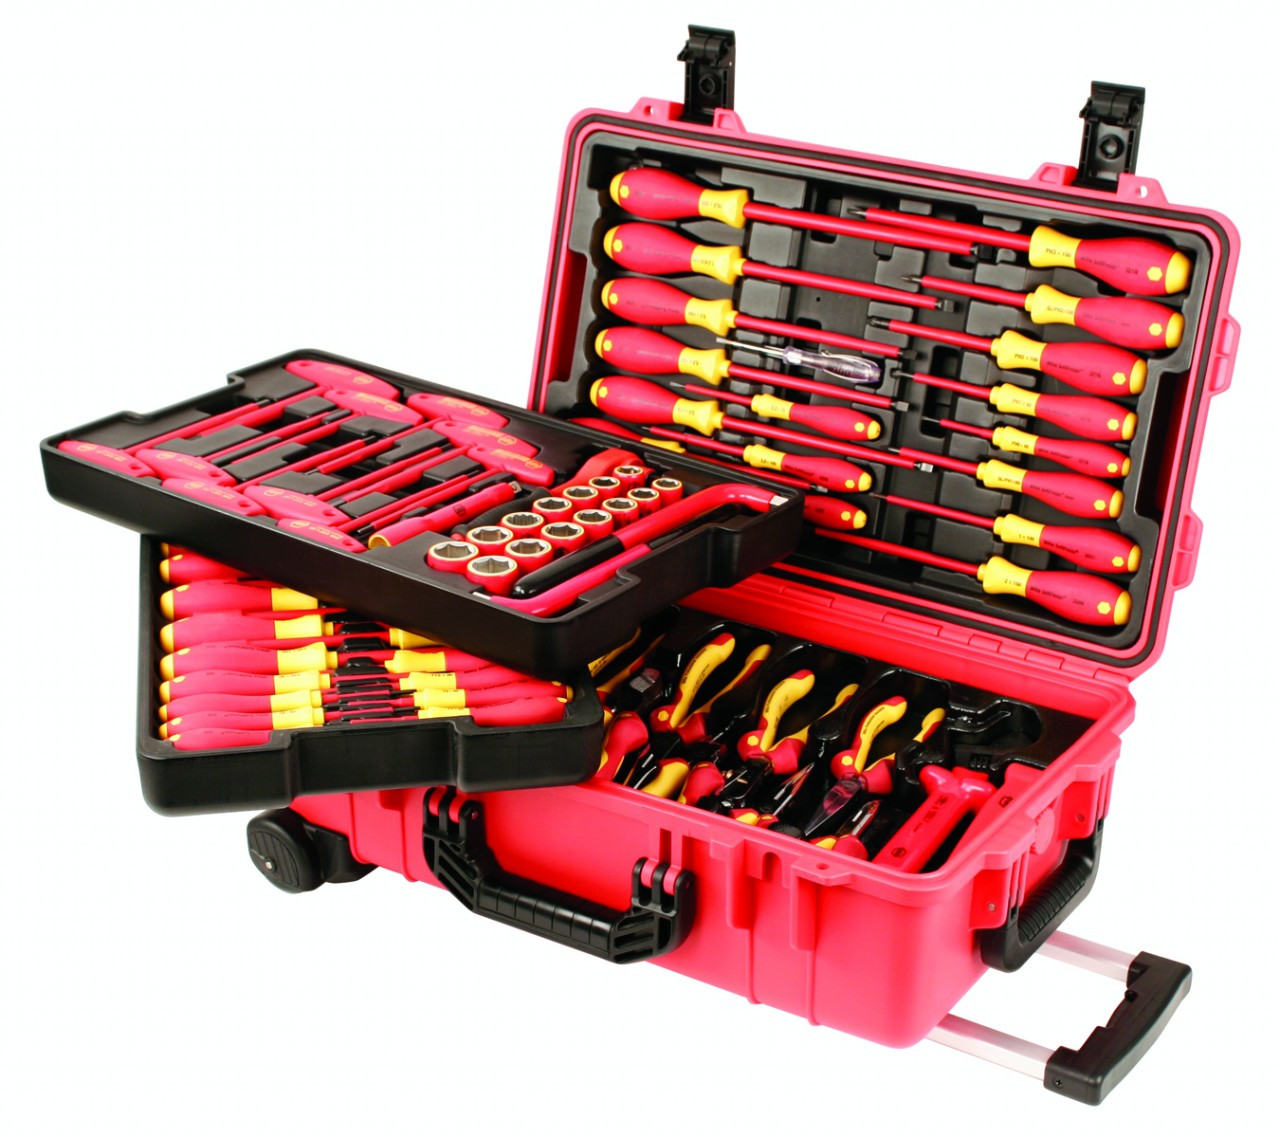 80 Pc Electricians Insulated Tool Set W Deluxe Storage